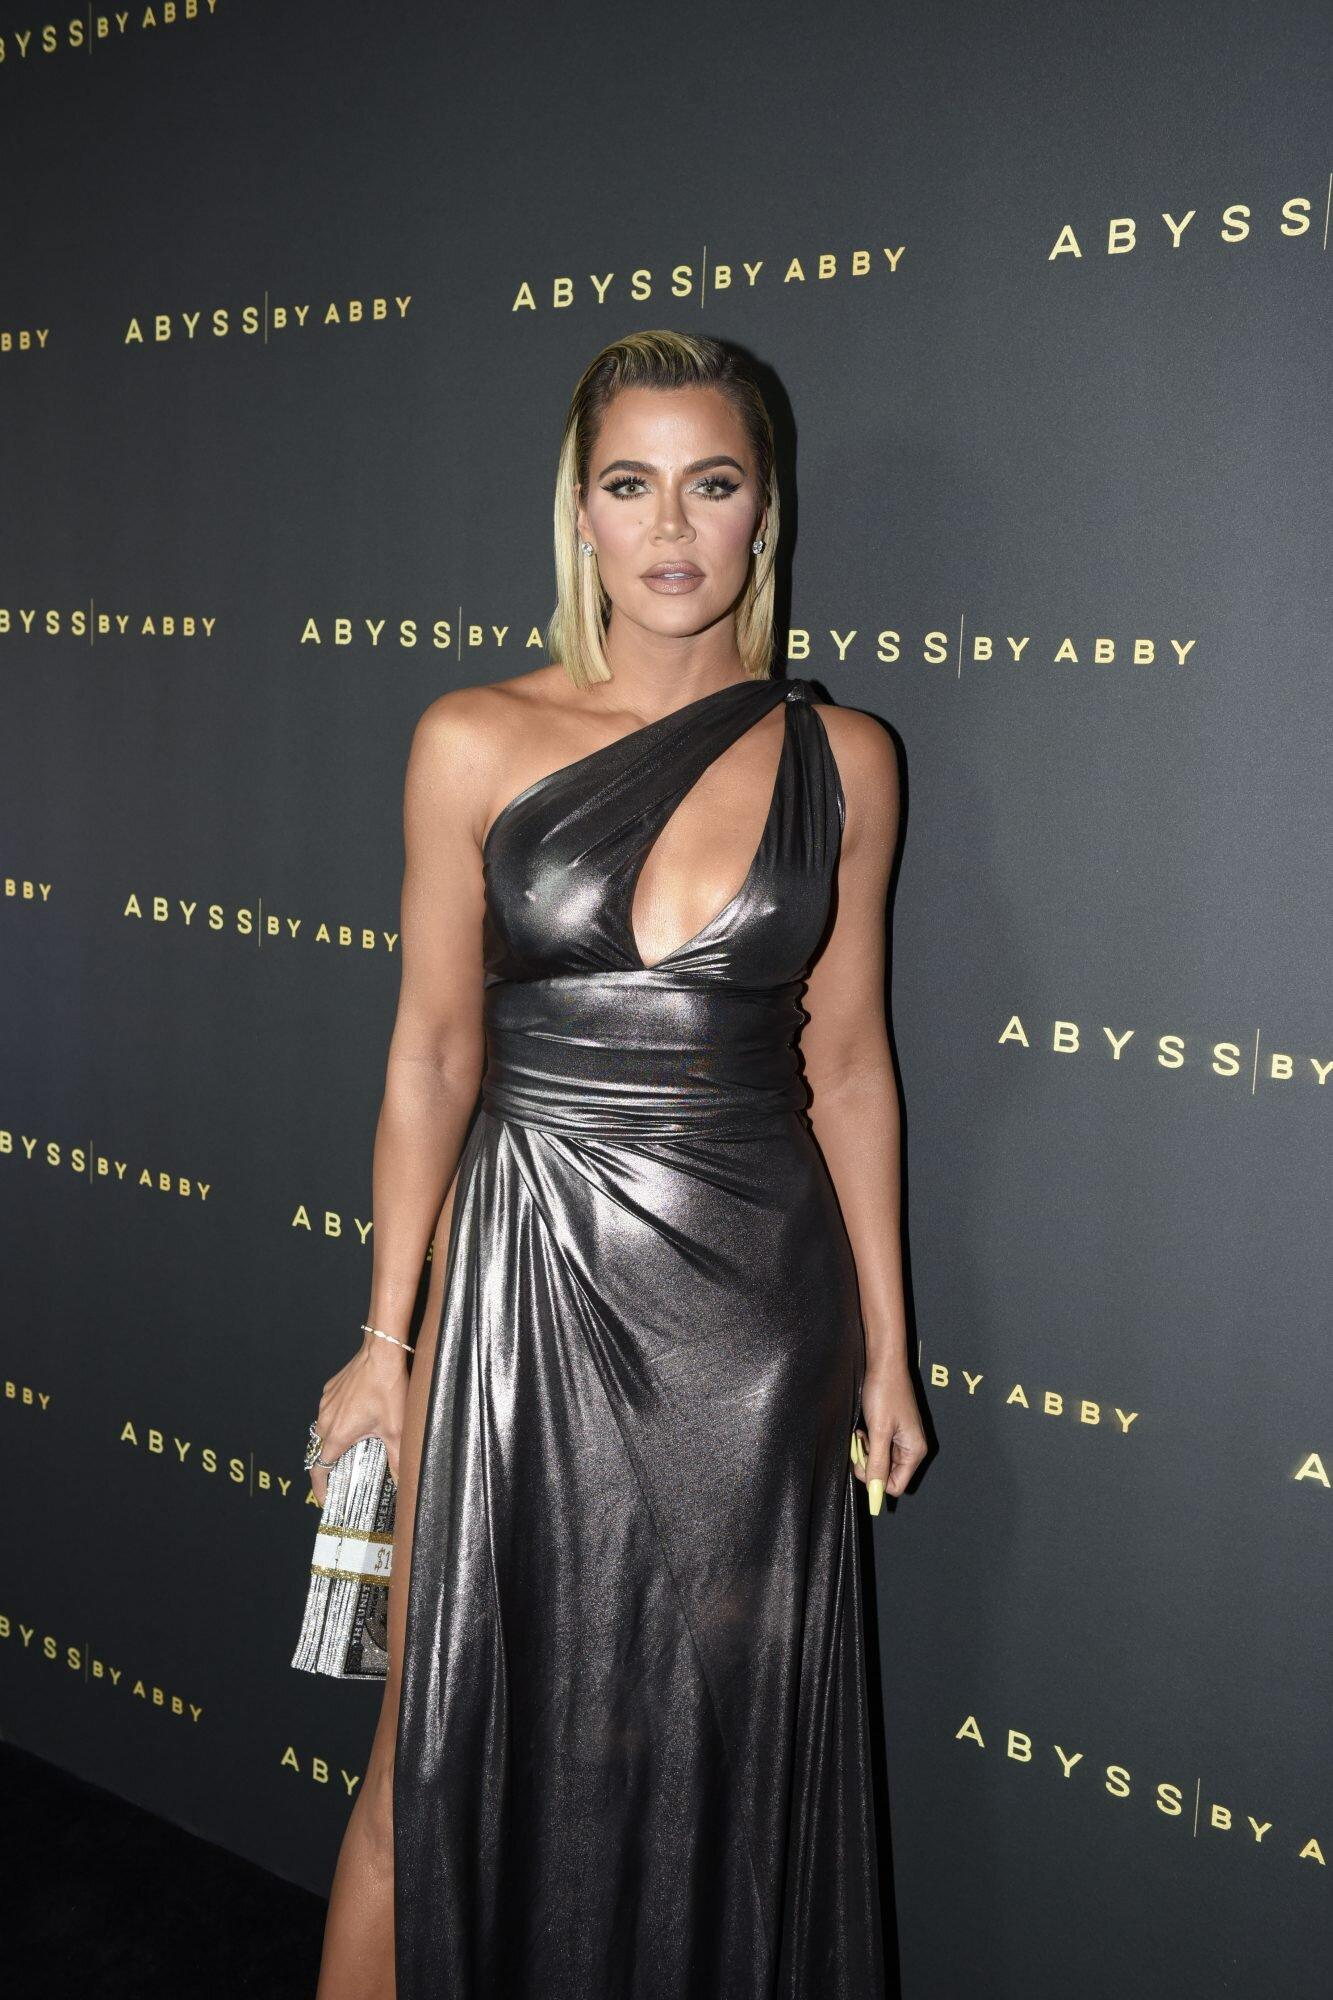 Khloe Kardashian has been called 'Alien' for her new look: this is how she responded